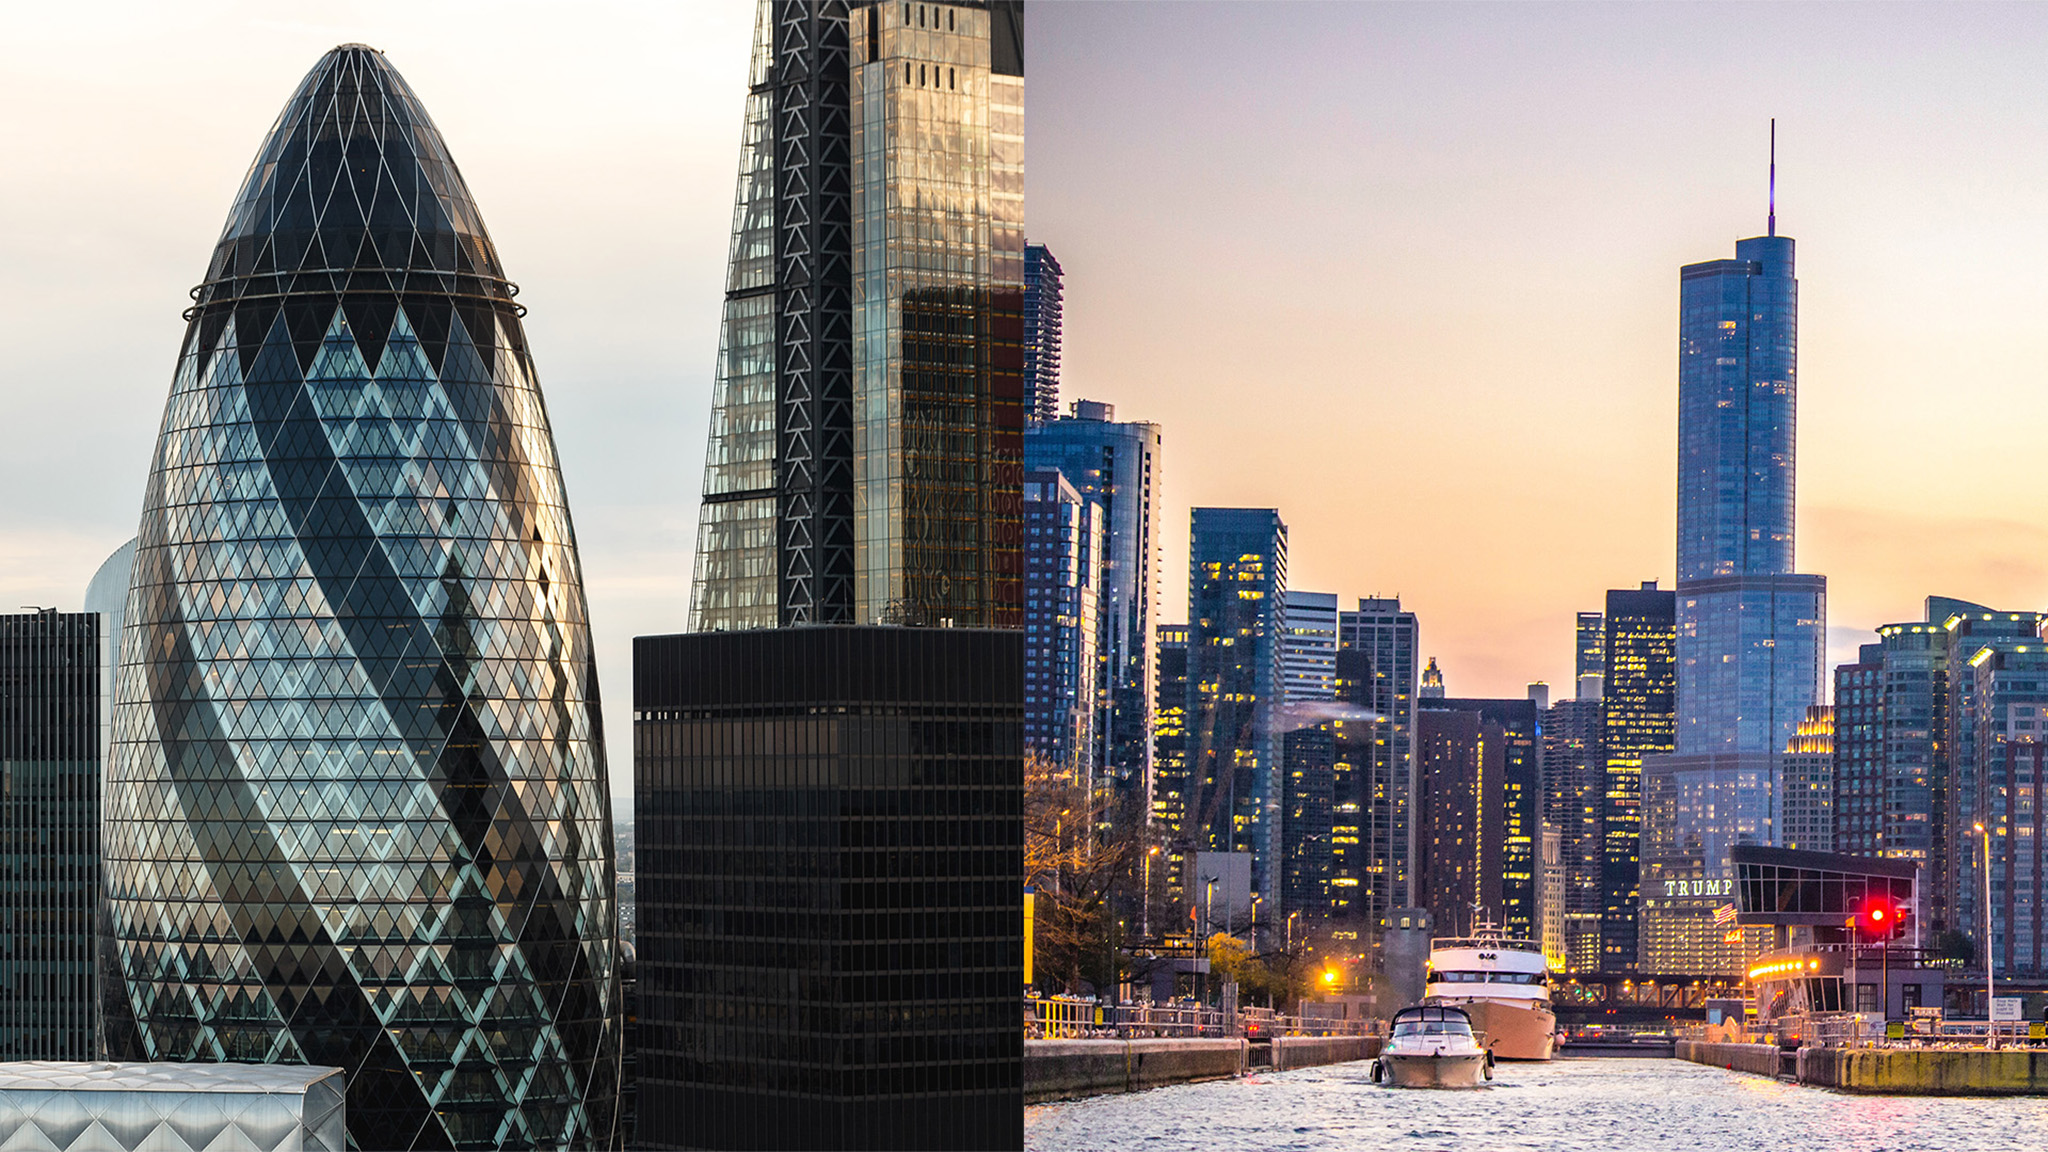 Chicago, London, and greener tall buildings